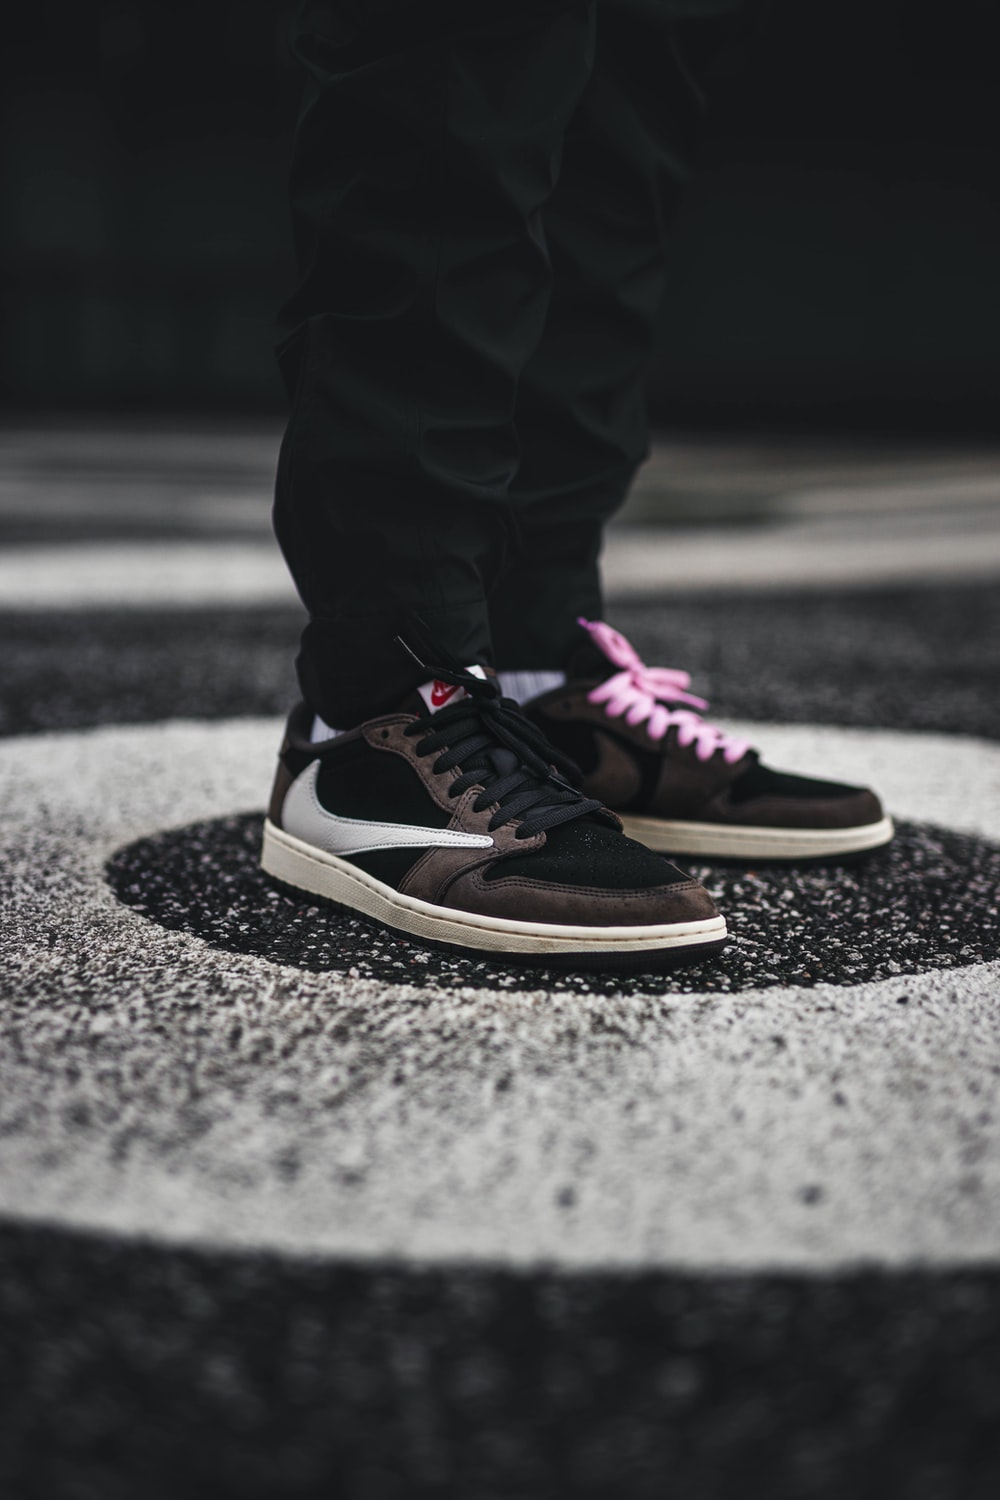 person wearing brown and white Nike sneakers